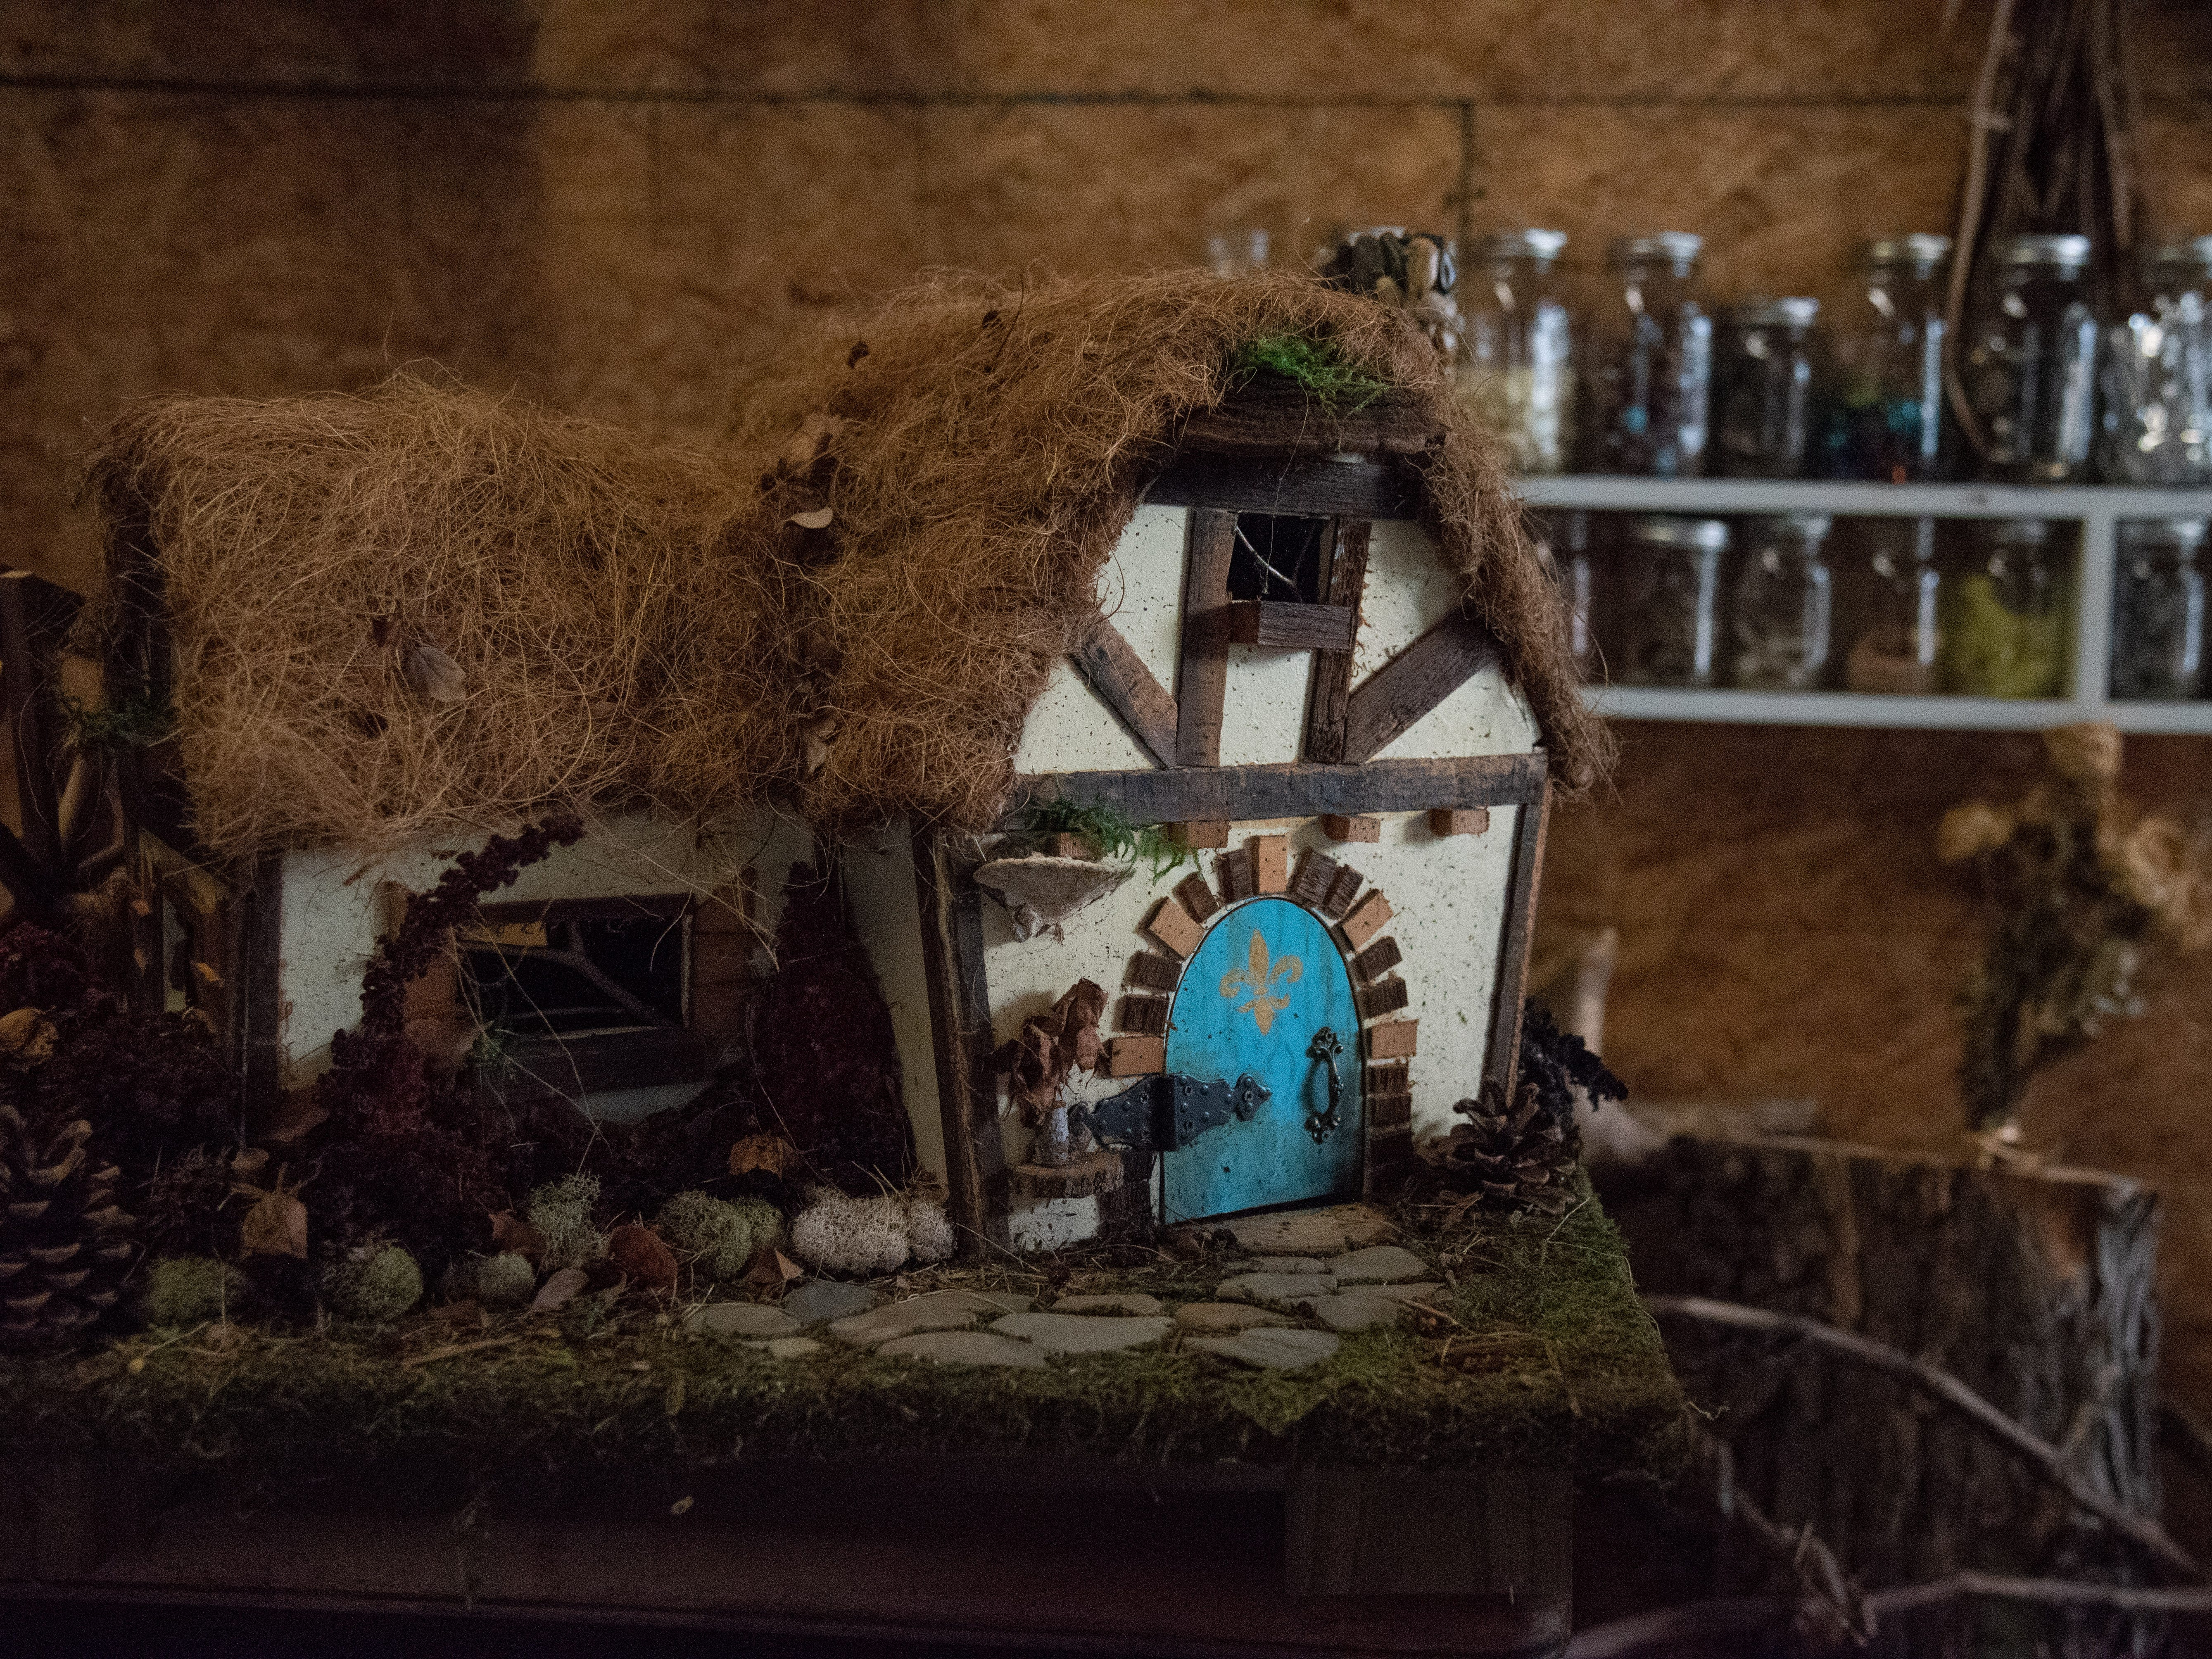 Betsy Marshall and her husband, Chris, love bringing intricate fairy houses to life inside their magical garage-turned-workshop at their home in Rush. The two have been creating and maintaining the fairy houses at the park in Henrietta for five years until they were asked to remove them last week. March 24, 2019.